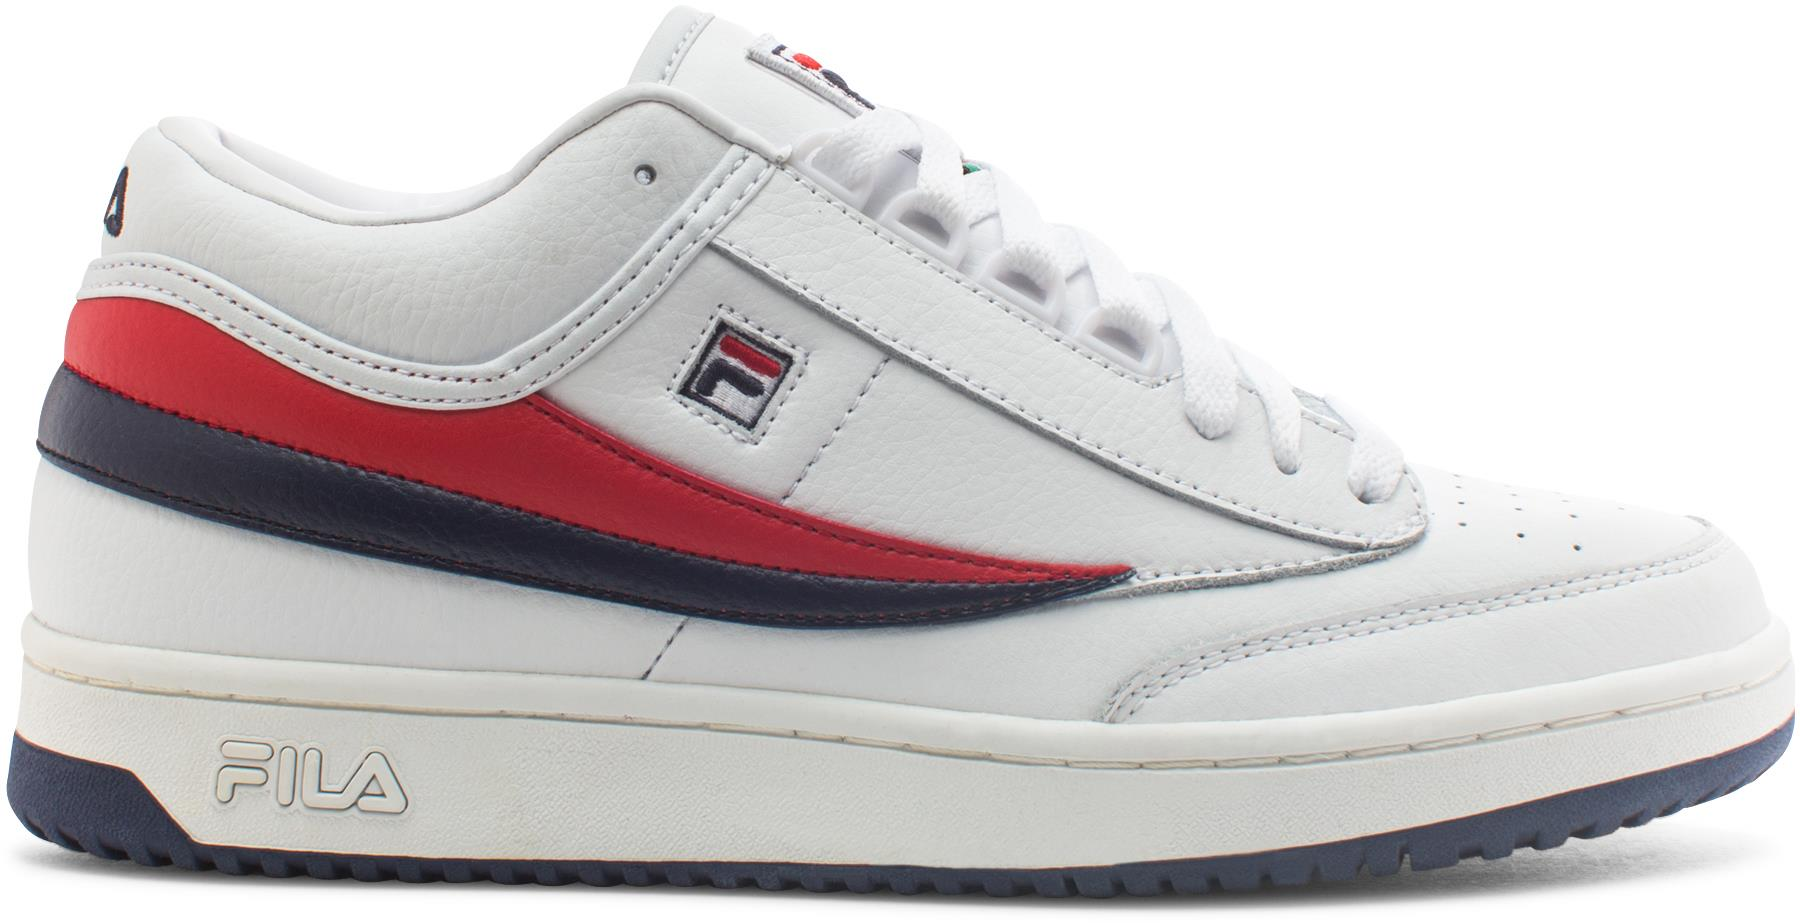 Click here to buy Fila Men T-1 Mid Fashion Sneakers by Fila.